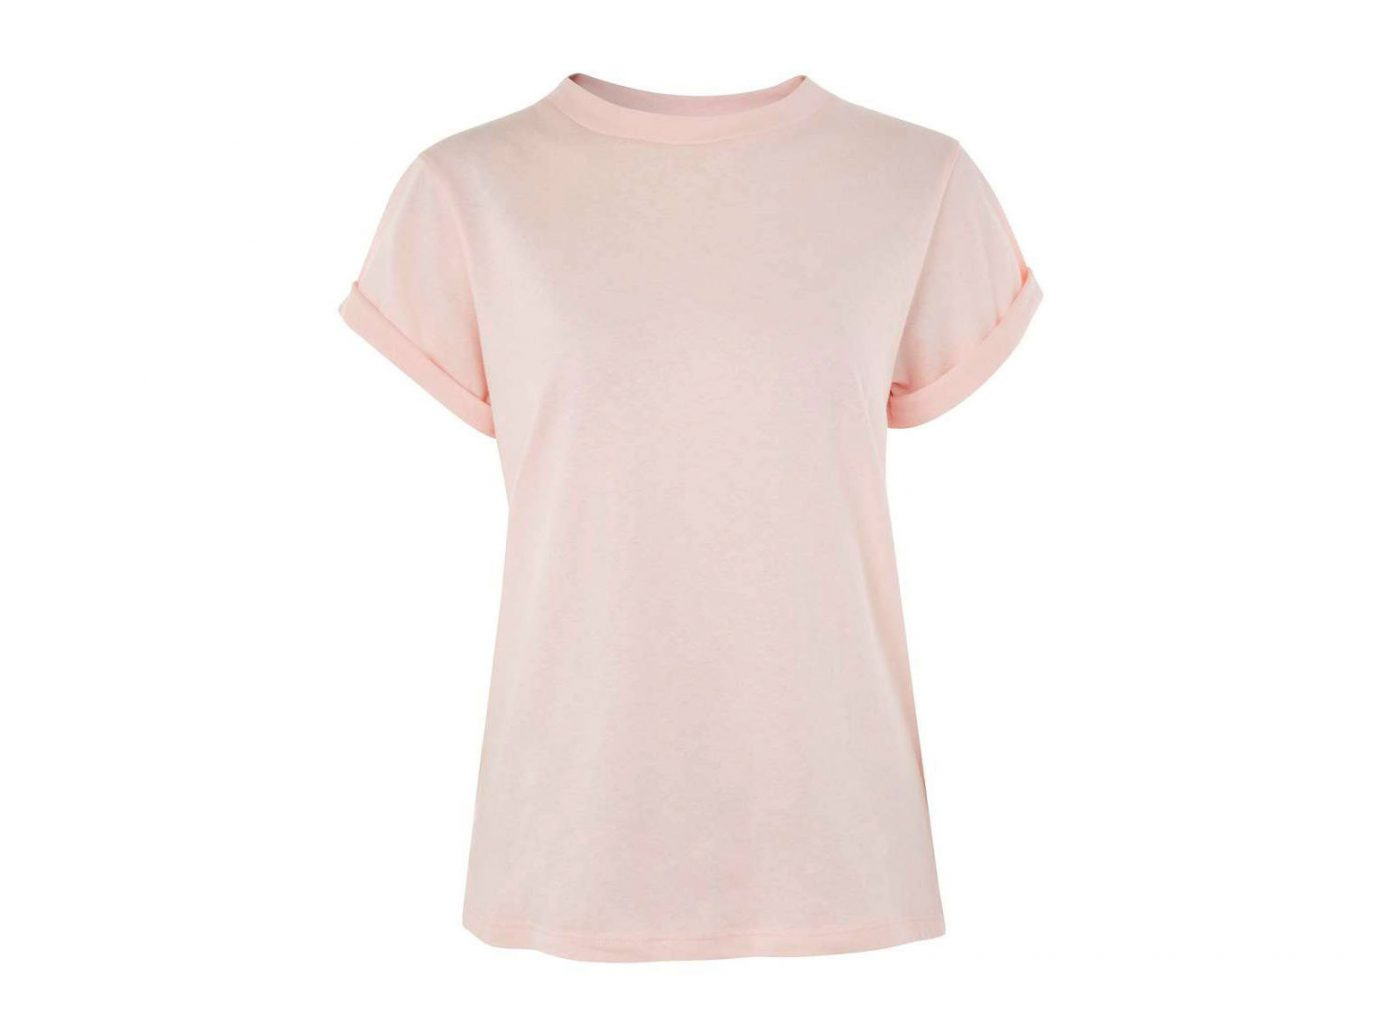 Style + Design Travel Shop clothing pink sleeve day dress shoulder neck peach t shirt